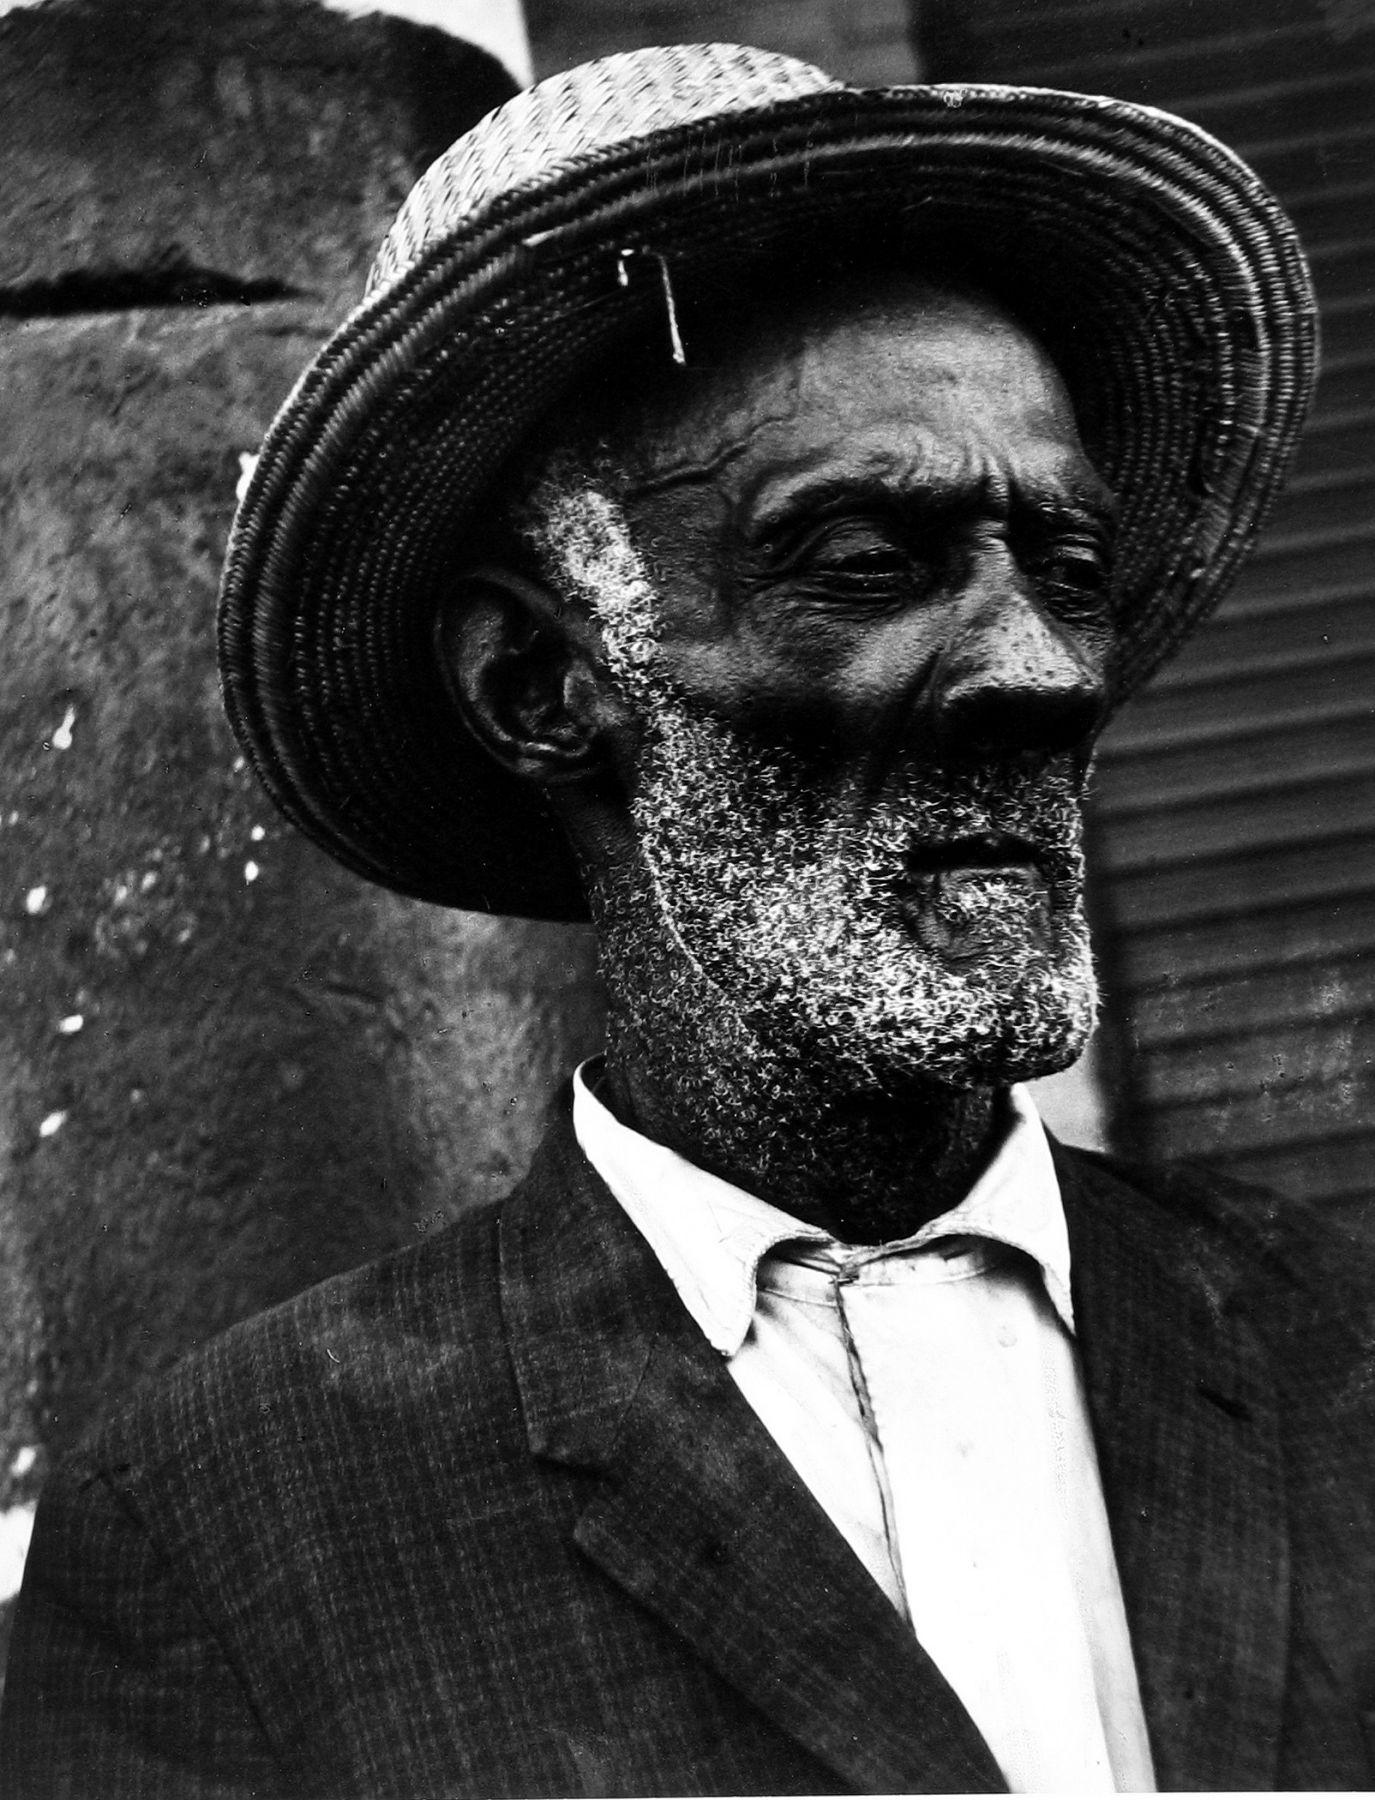 Leon Levinstein - Haiti (Haitian man with straw hat and suit), 1976 - Howard Greenberg Gallery - 2018